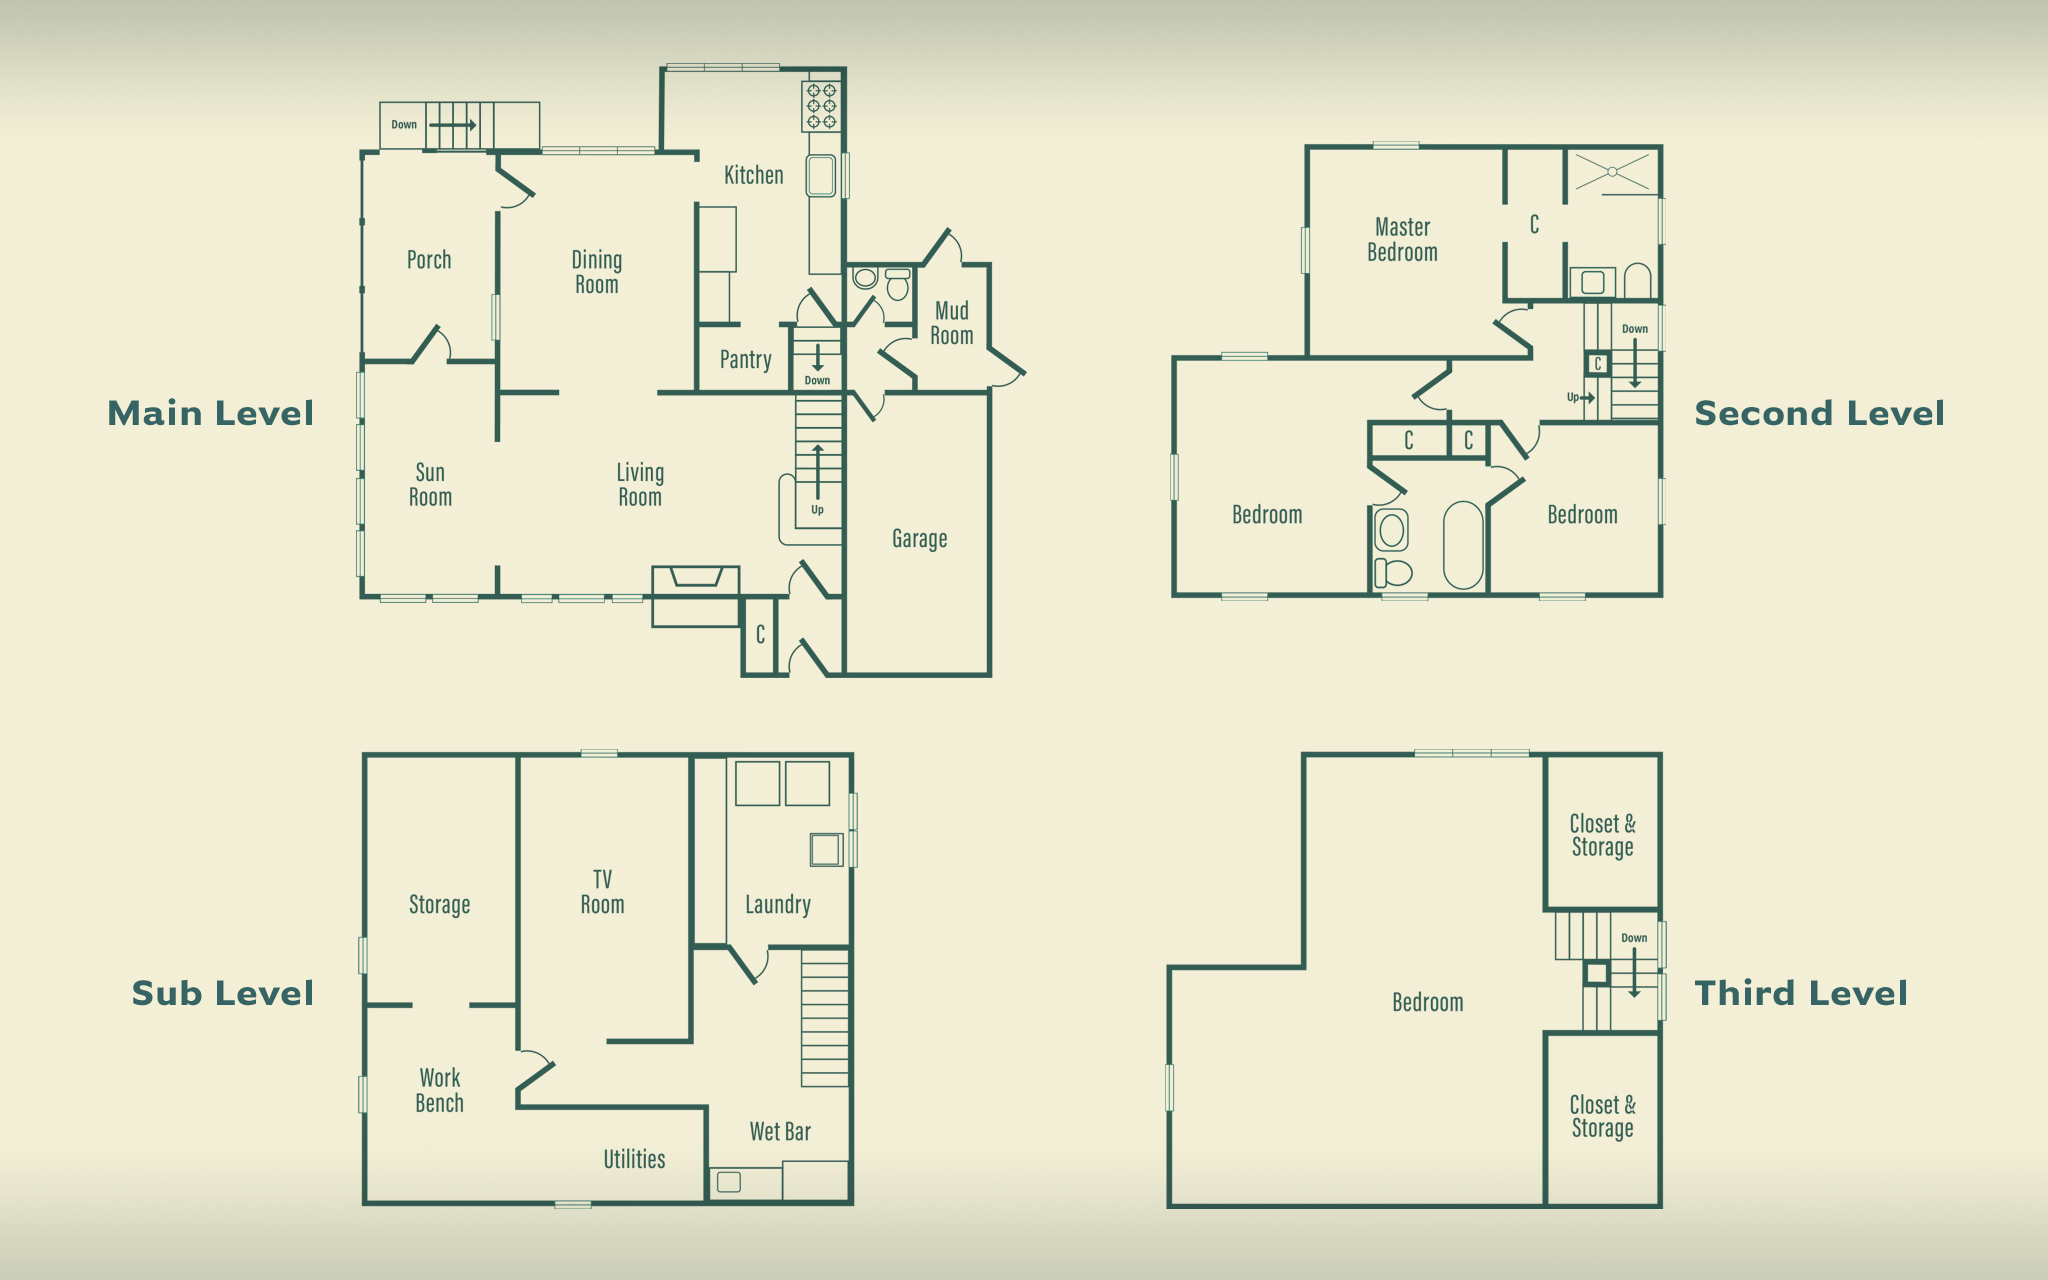 floorplan_ALL_2048x1280.jpg